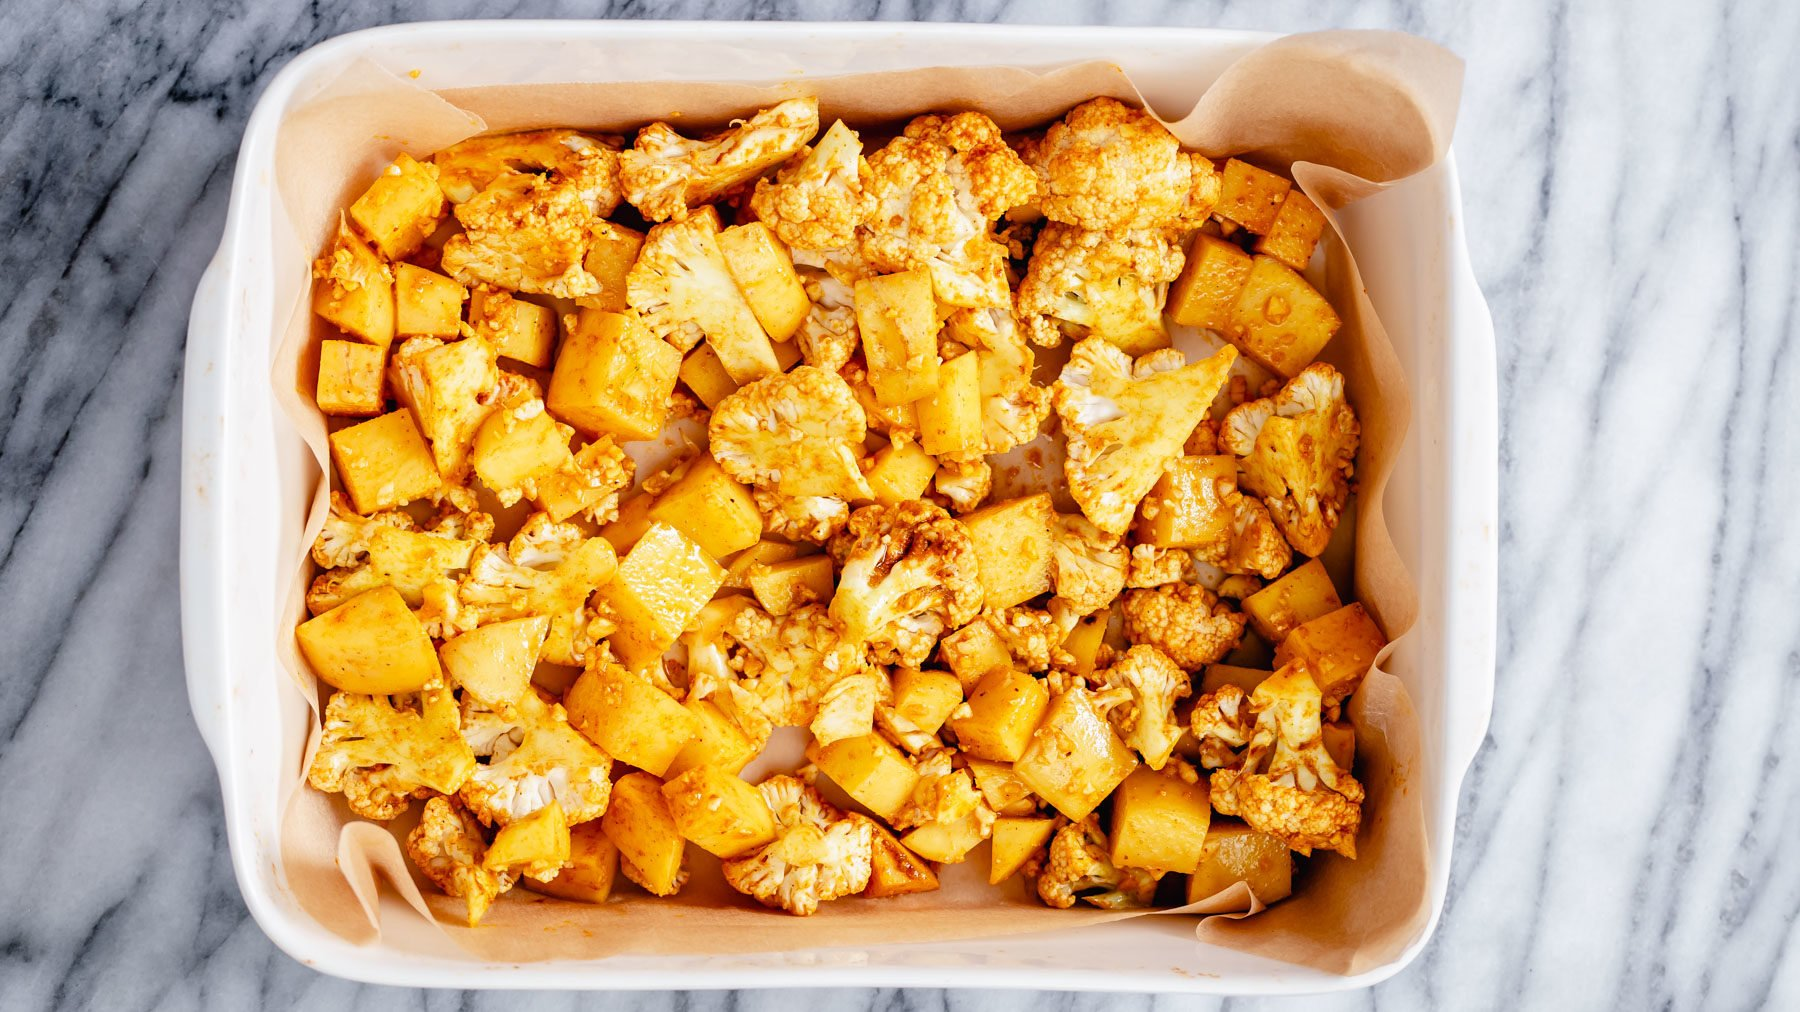 cauliflower and potato cubes in a casserole dish